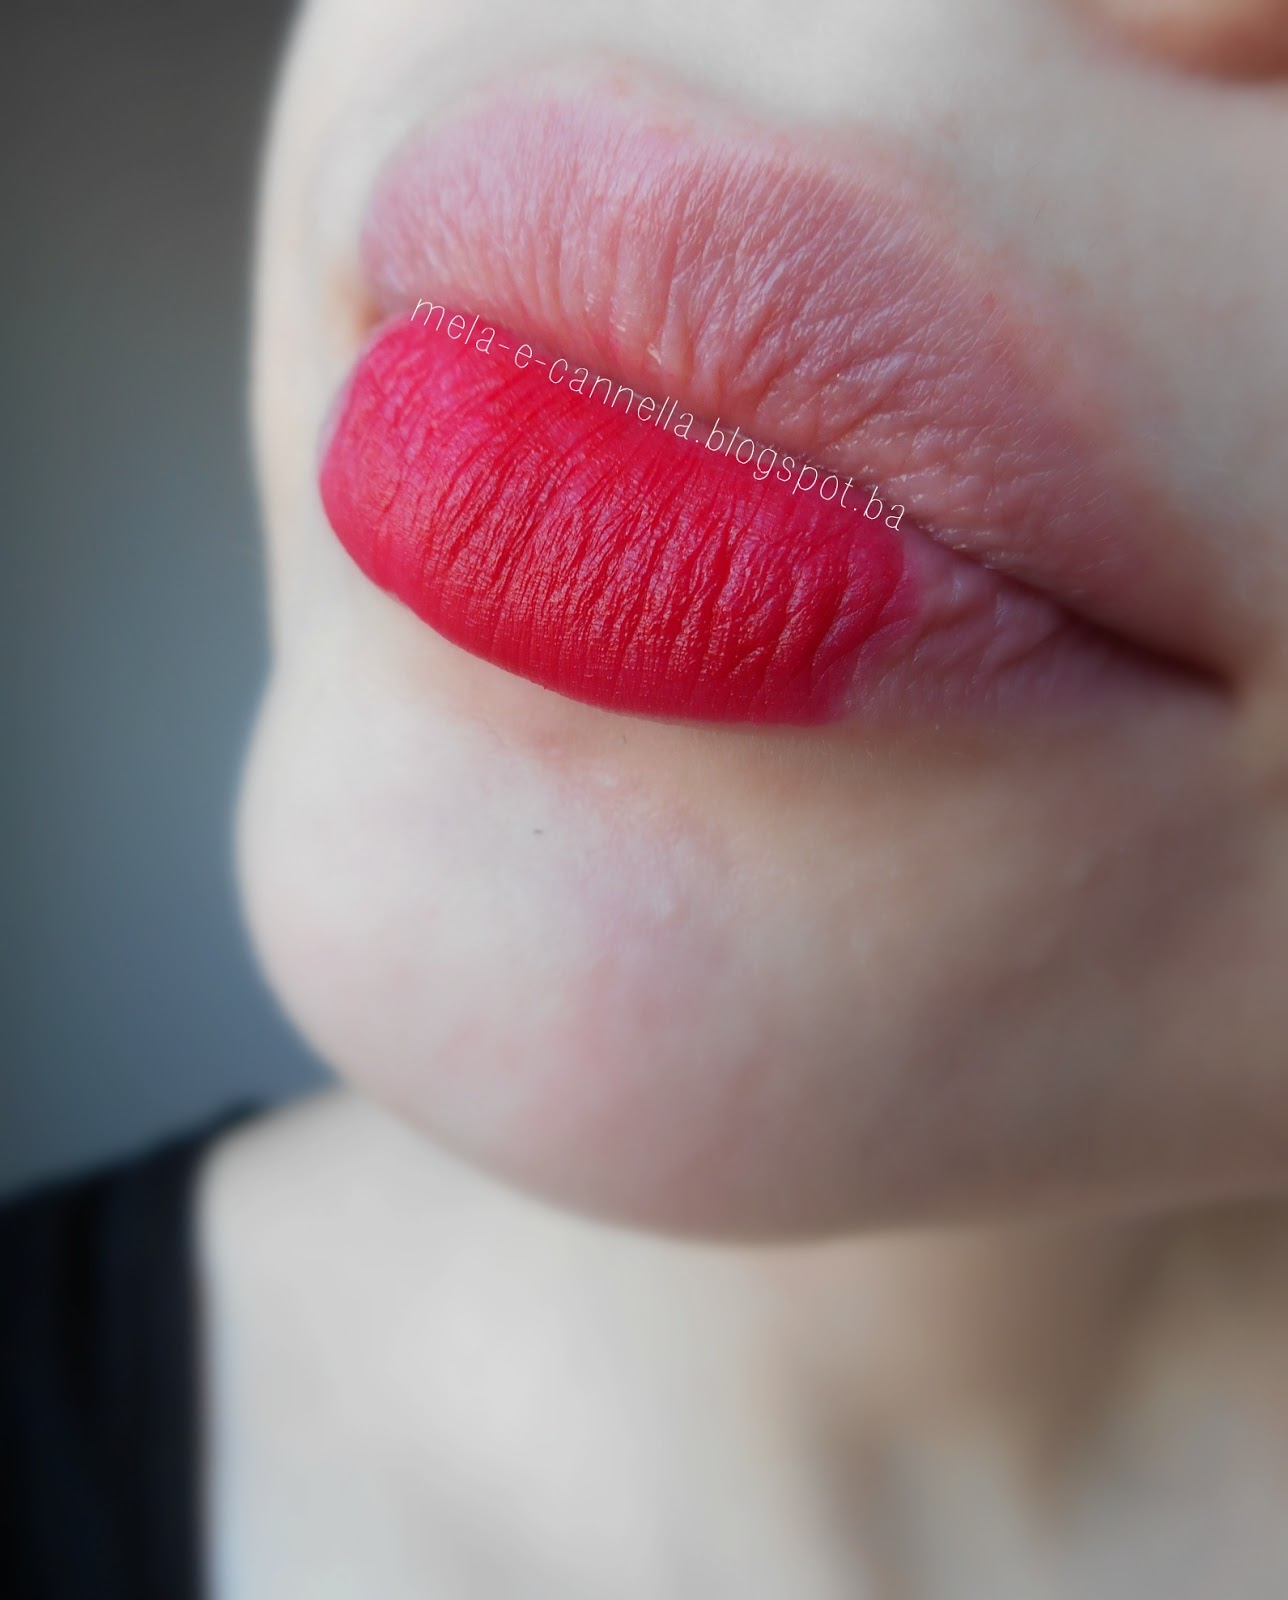 Mela E Cannella Avon True Color Matte Lipstick Ruby Kiss